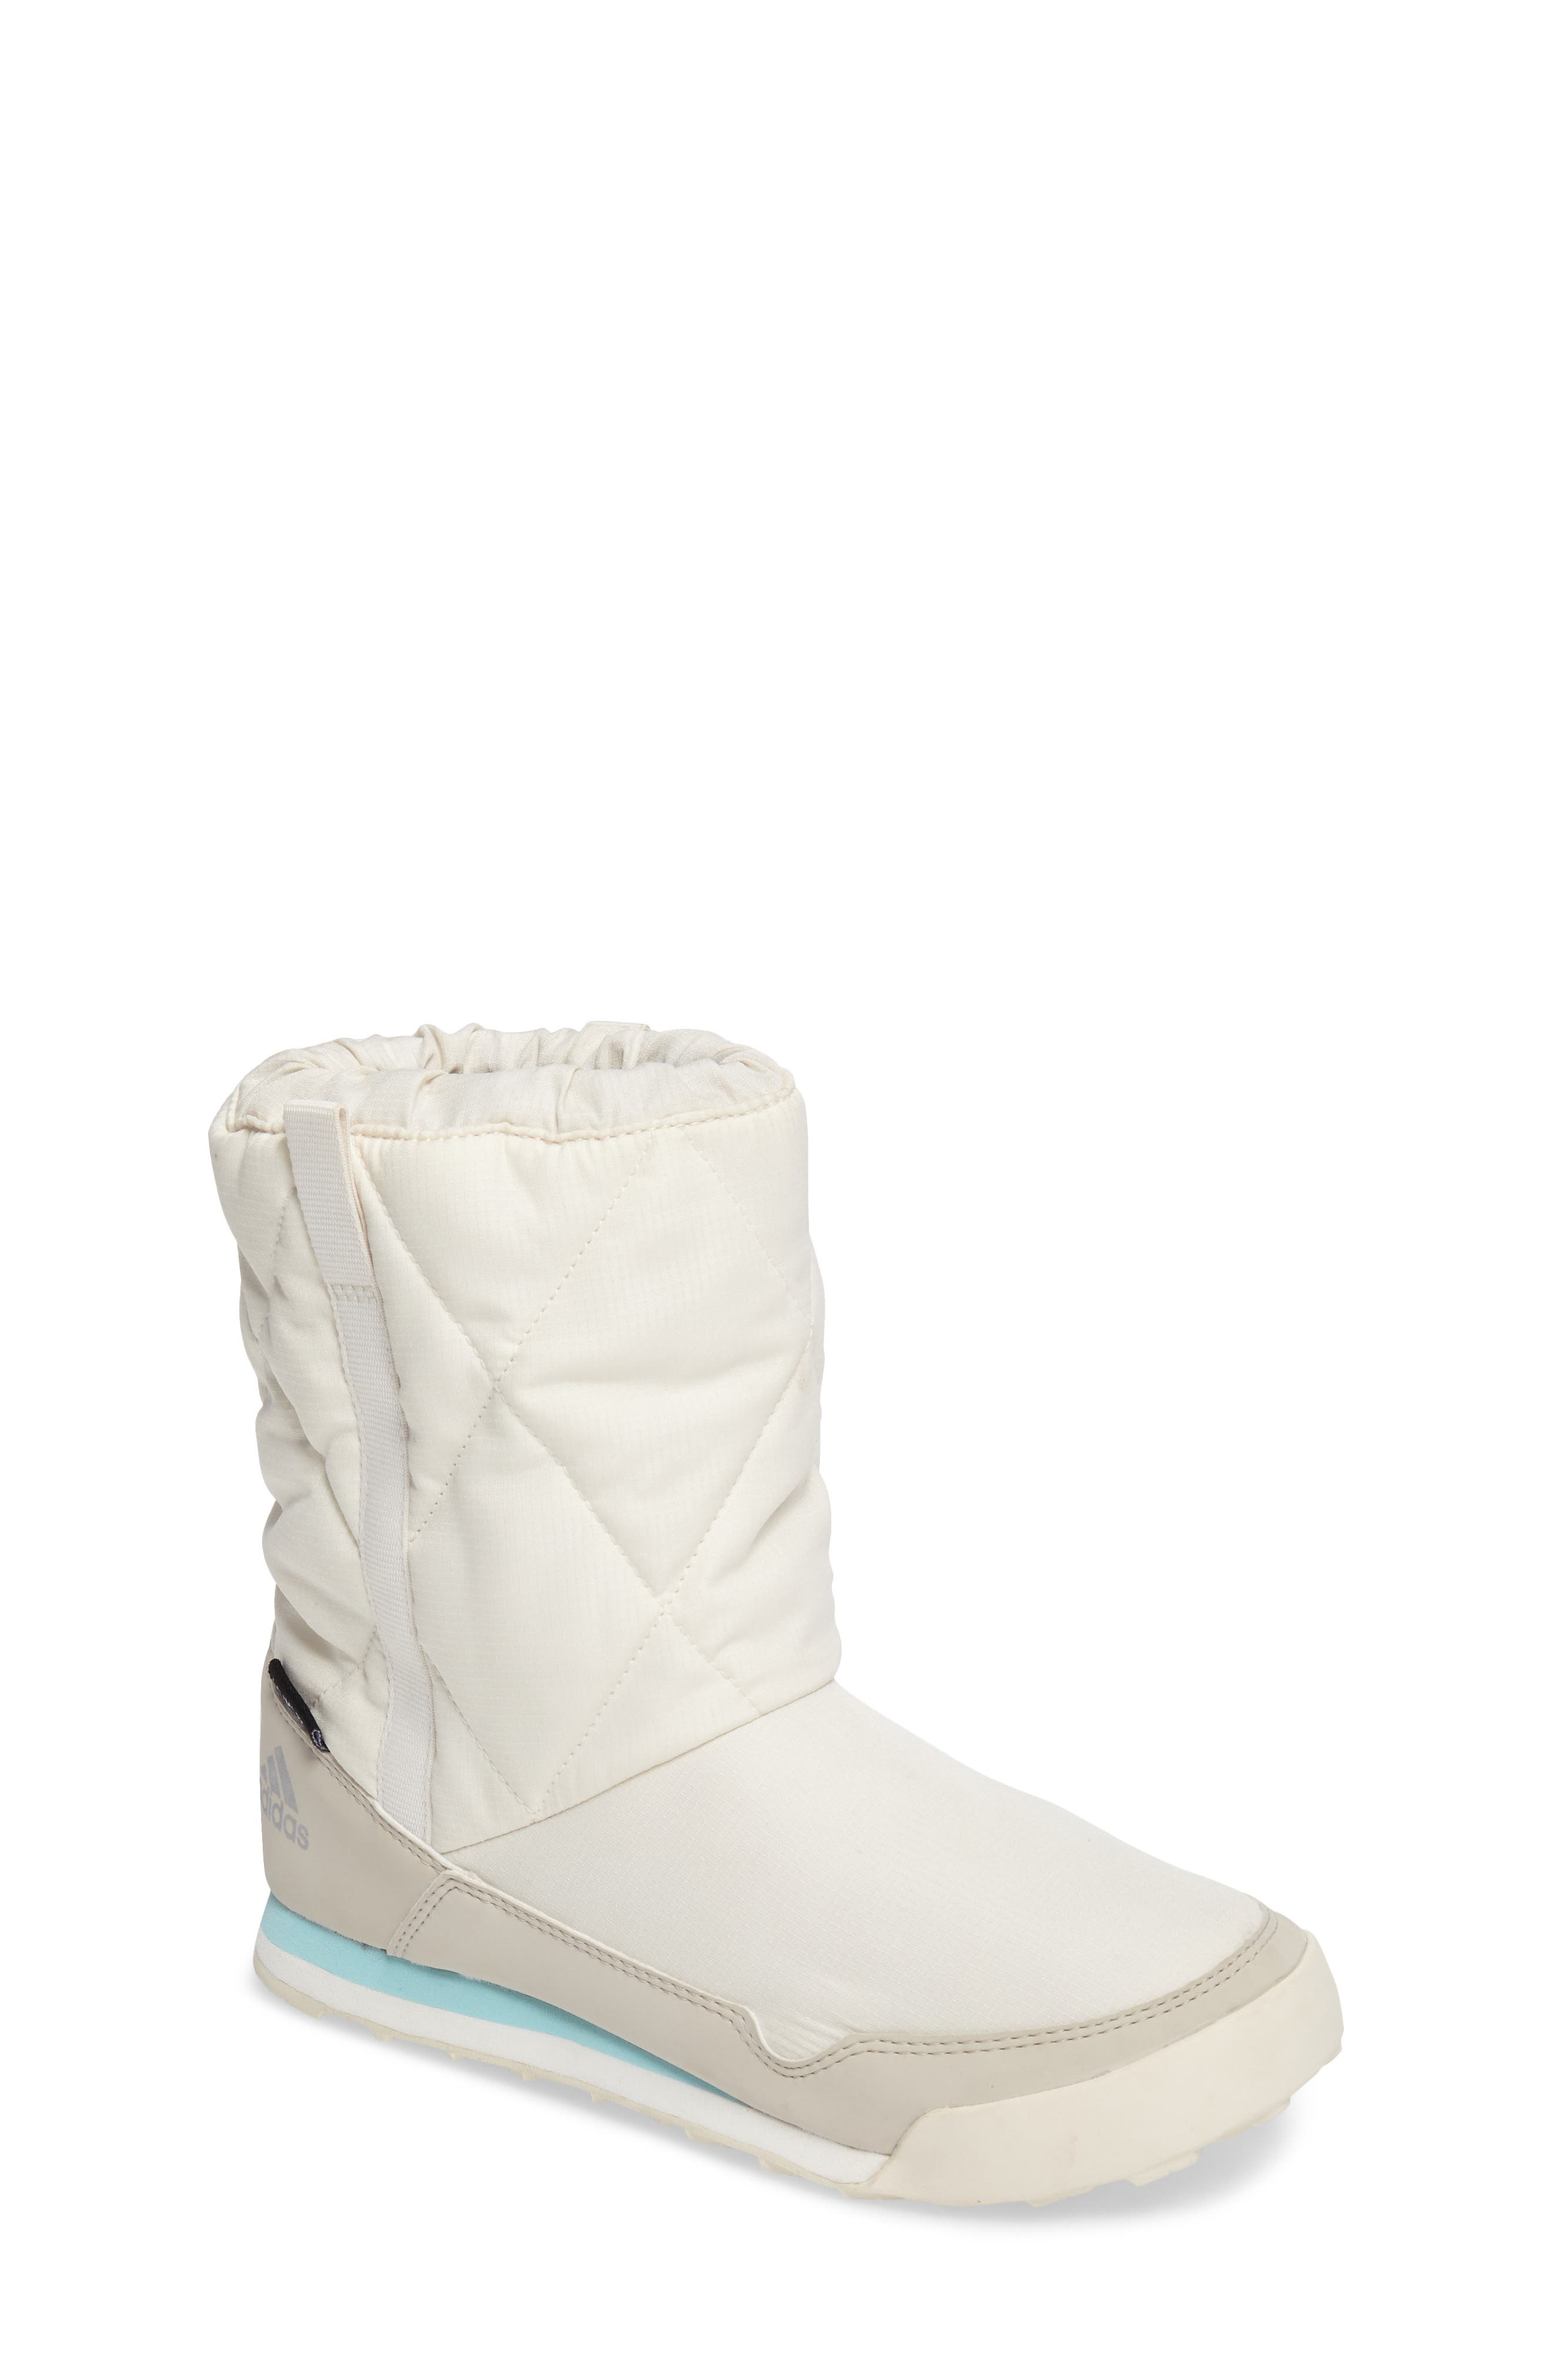 CW Snowpitch Insulated Waterproof Boot,                         Main,                         color, Chalk White/ Clear Brown/ Aqua